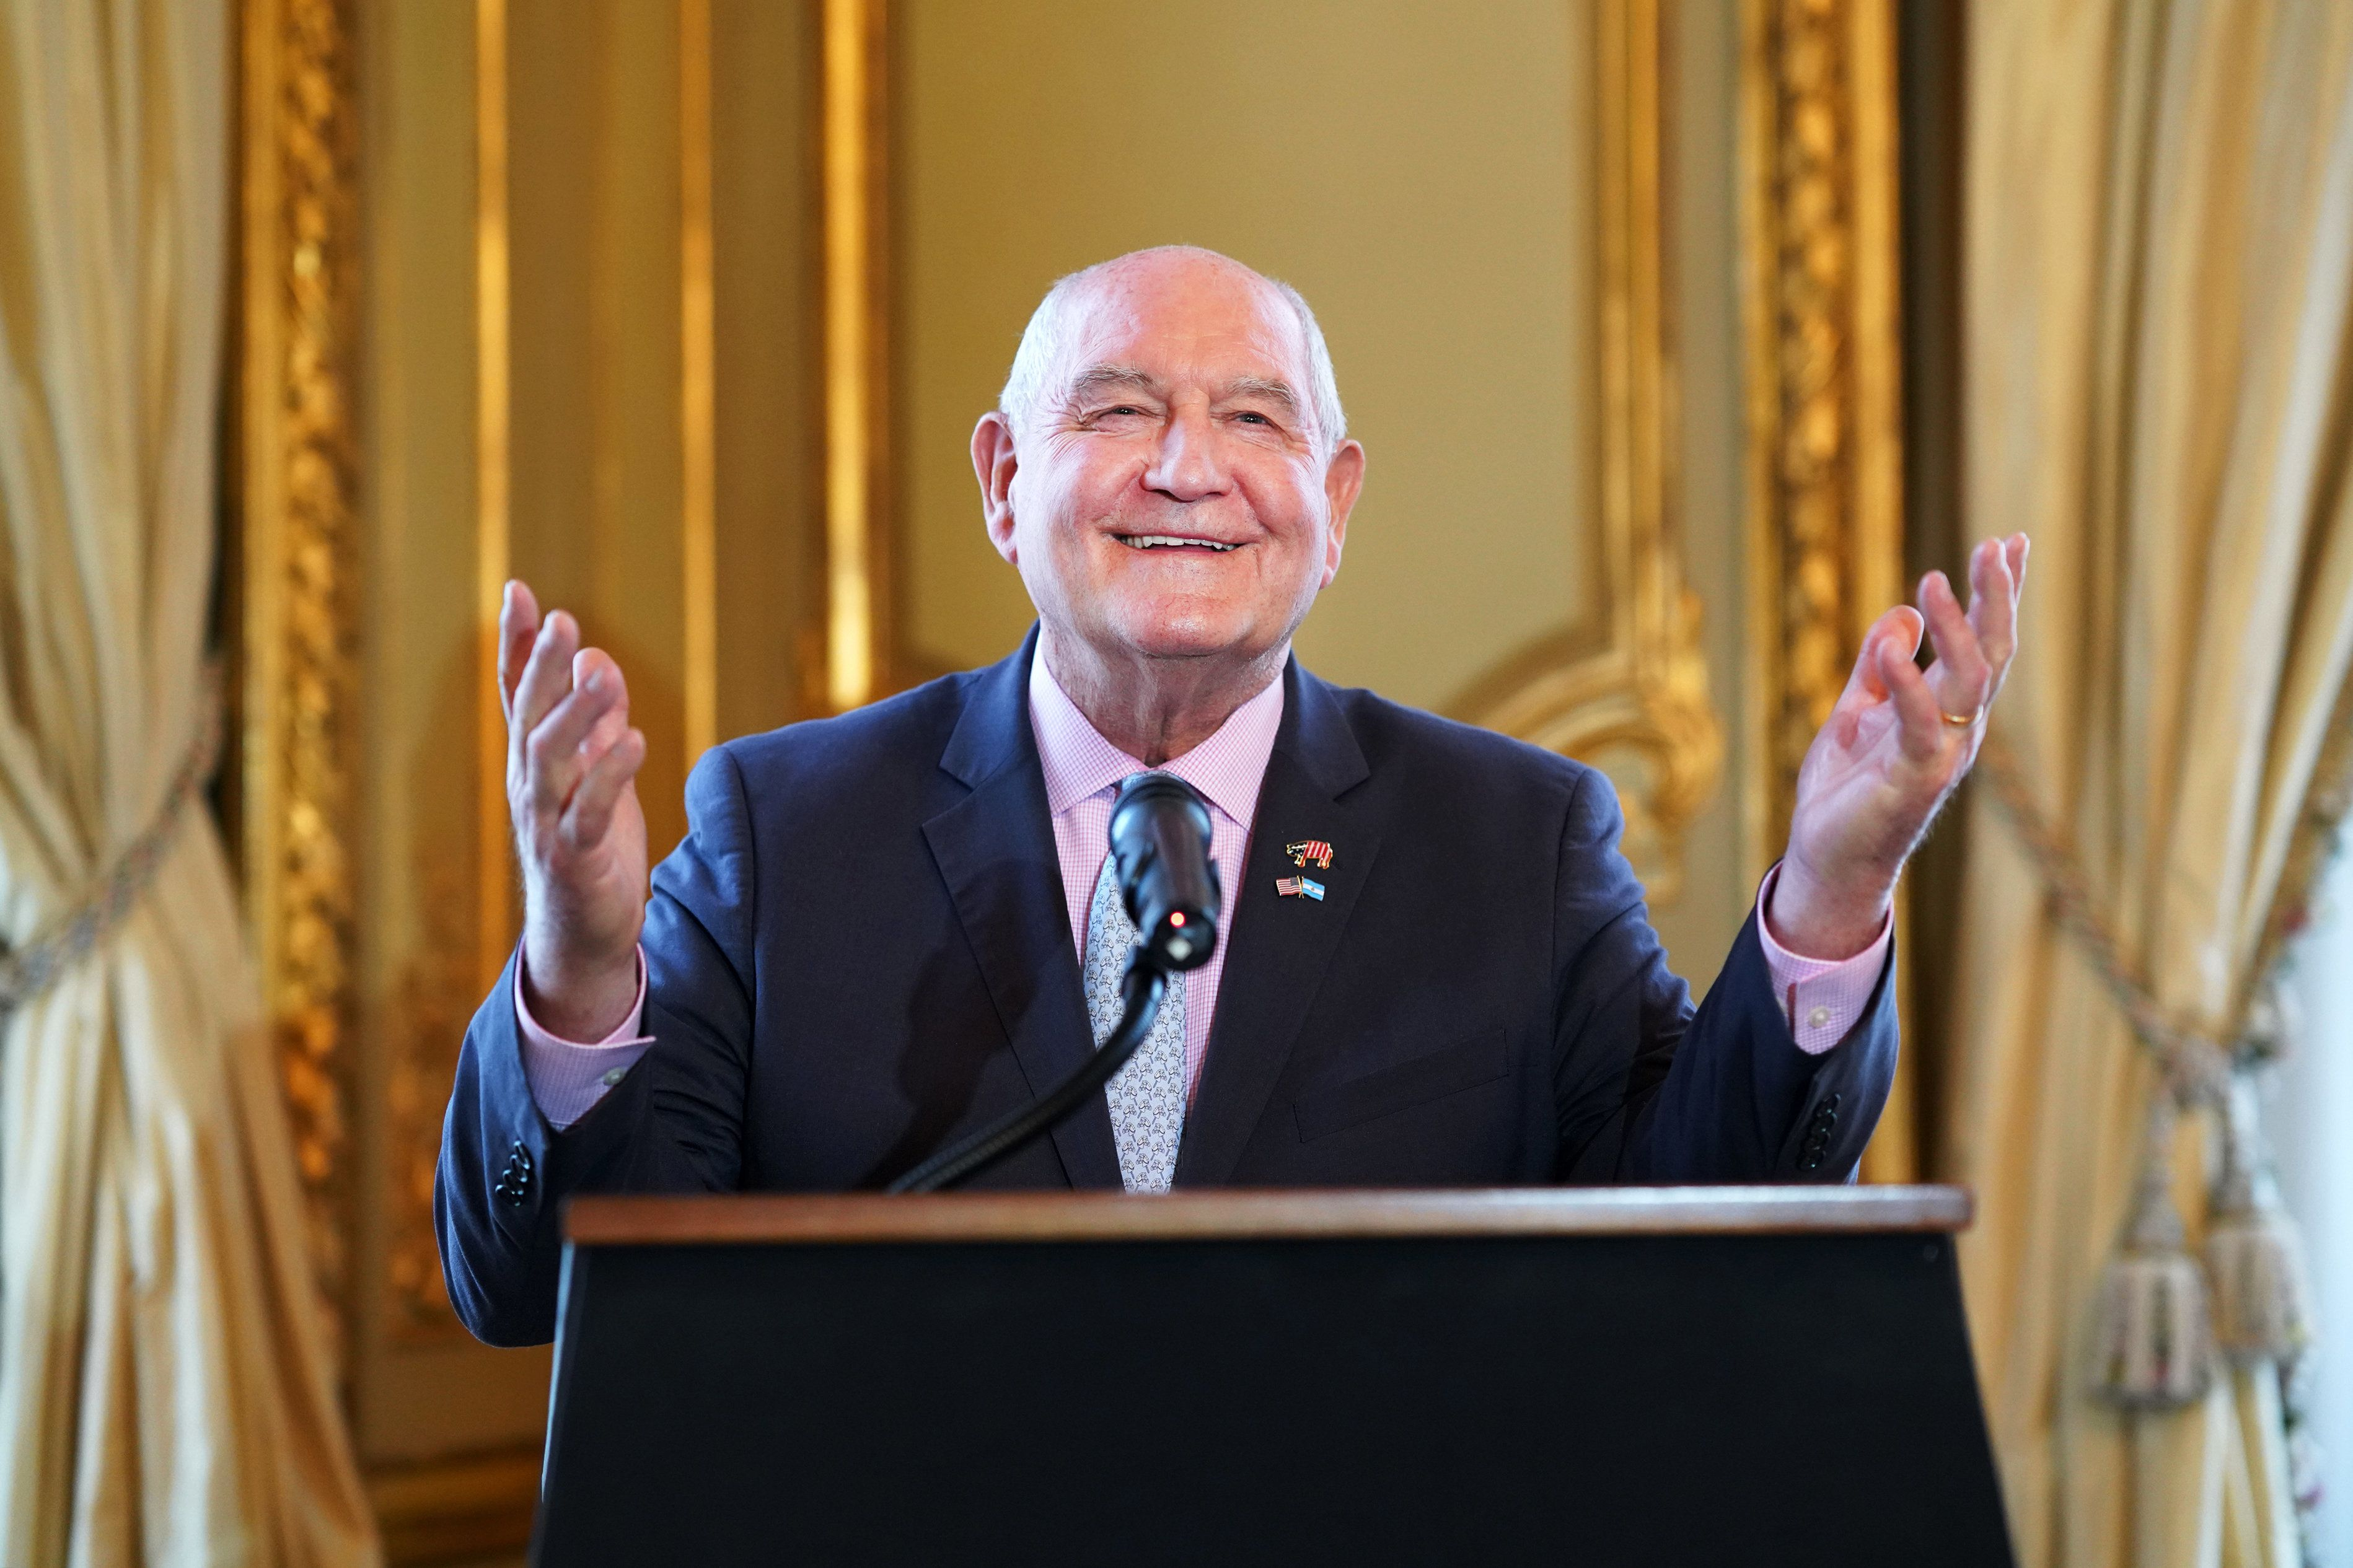 Sonny Perdue, U.S. secretary of agriculture, gestures while speaking during an event at the U.S. Embassy in Buenos Aires, Argentina, on Saturday, July 28, 2018. At the event to celebrate the recent entry of American pork into the Argentine market, Perdue said that American farmers will soon see the first payments of a $12 billion subsidyprogramdesigned to shield them from a burgeoning trade war. Photographer: Pablo E. Piovano/Bloomberg via Getty Images